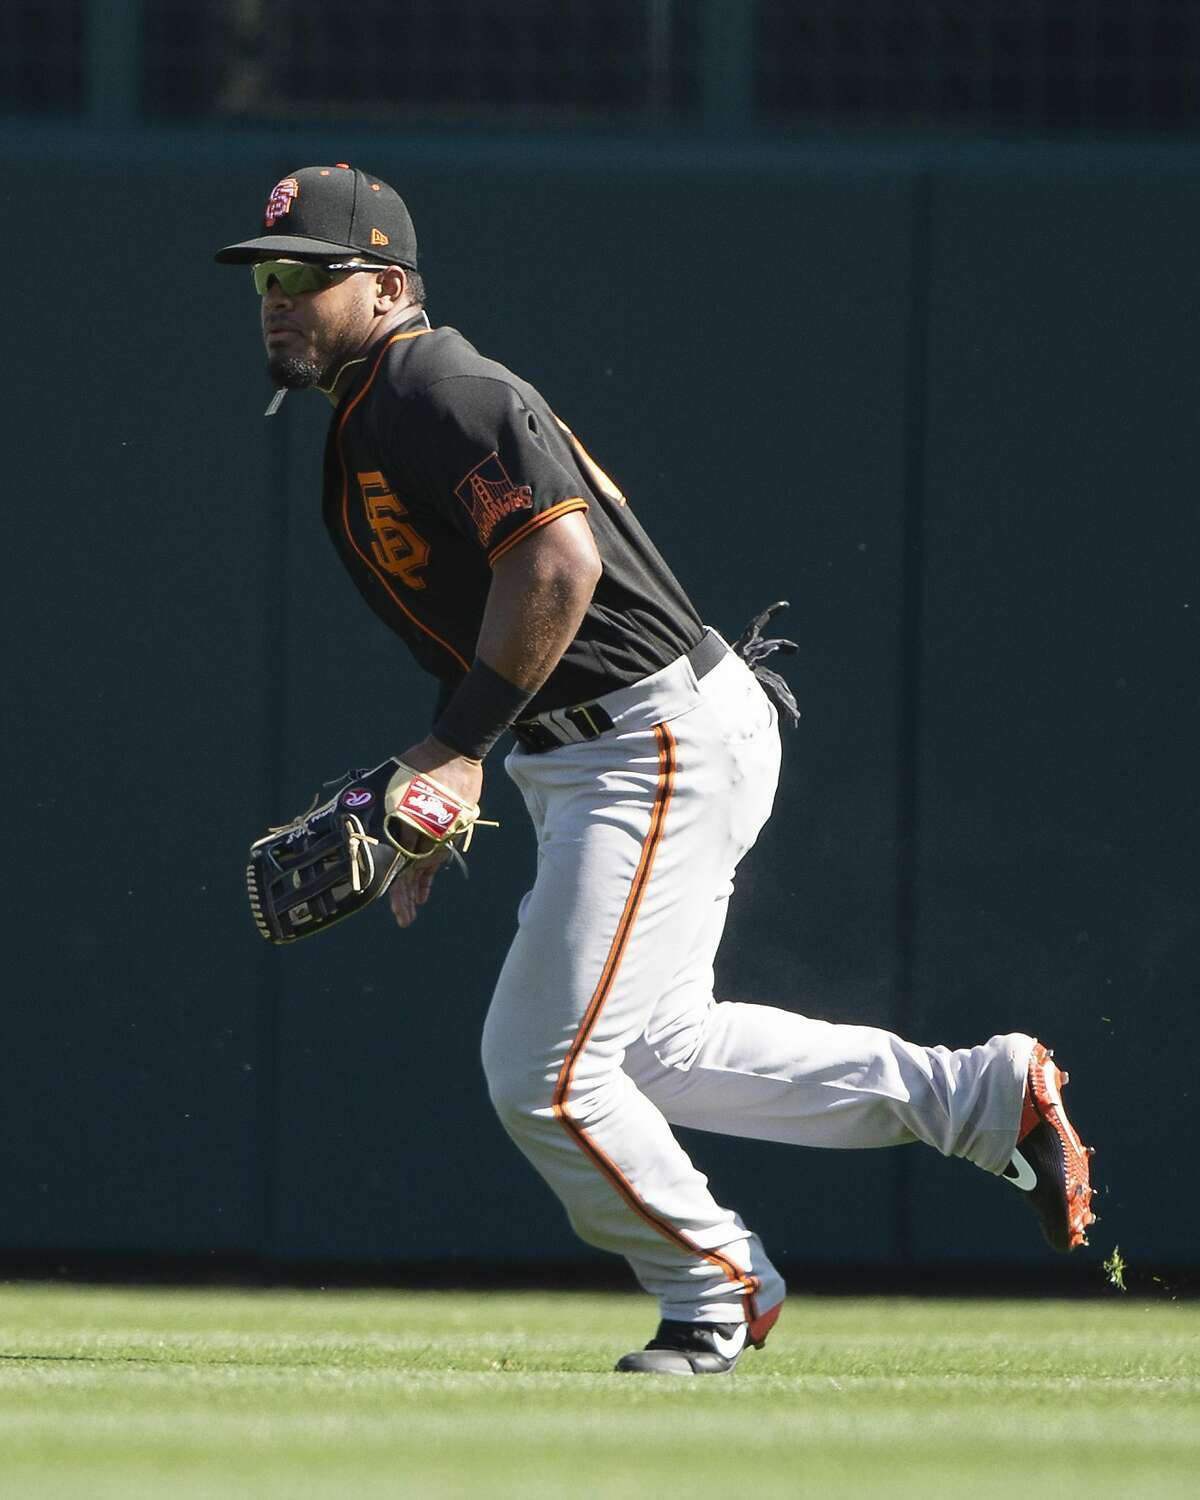 GLENDALE, ARIZONA - FEBRUARY 25: Heliot Ramos #80 of the San Francisco Giants fields against the Chicago White Sox on February 25, 2020 at Camelback Ranch in Glendale Arizona. ~~